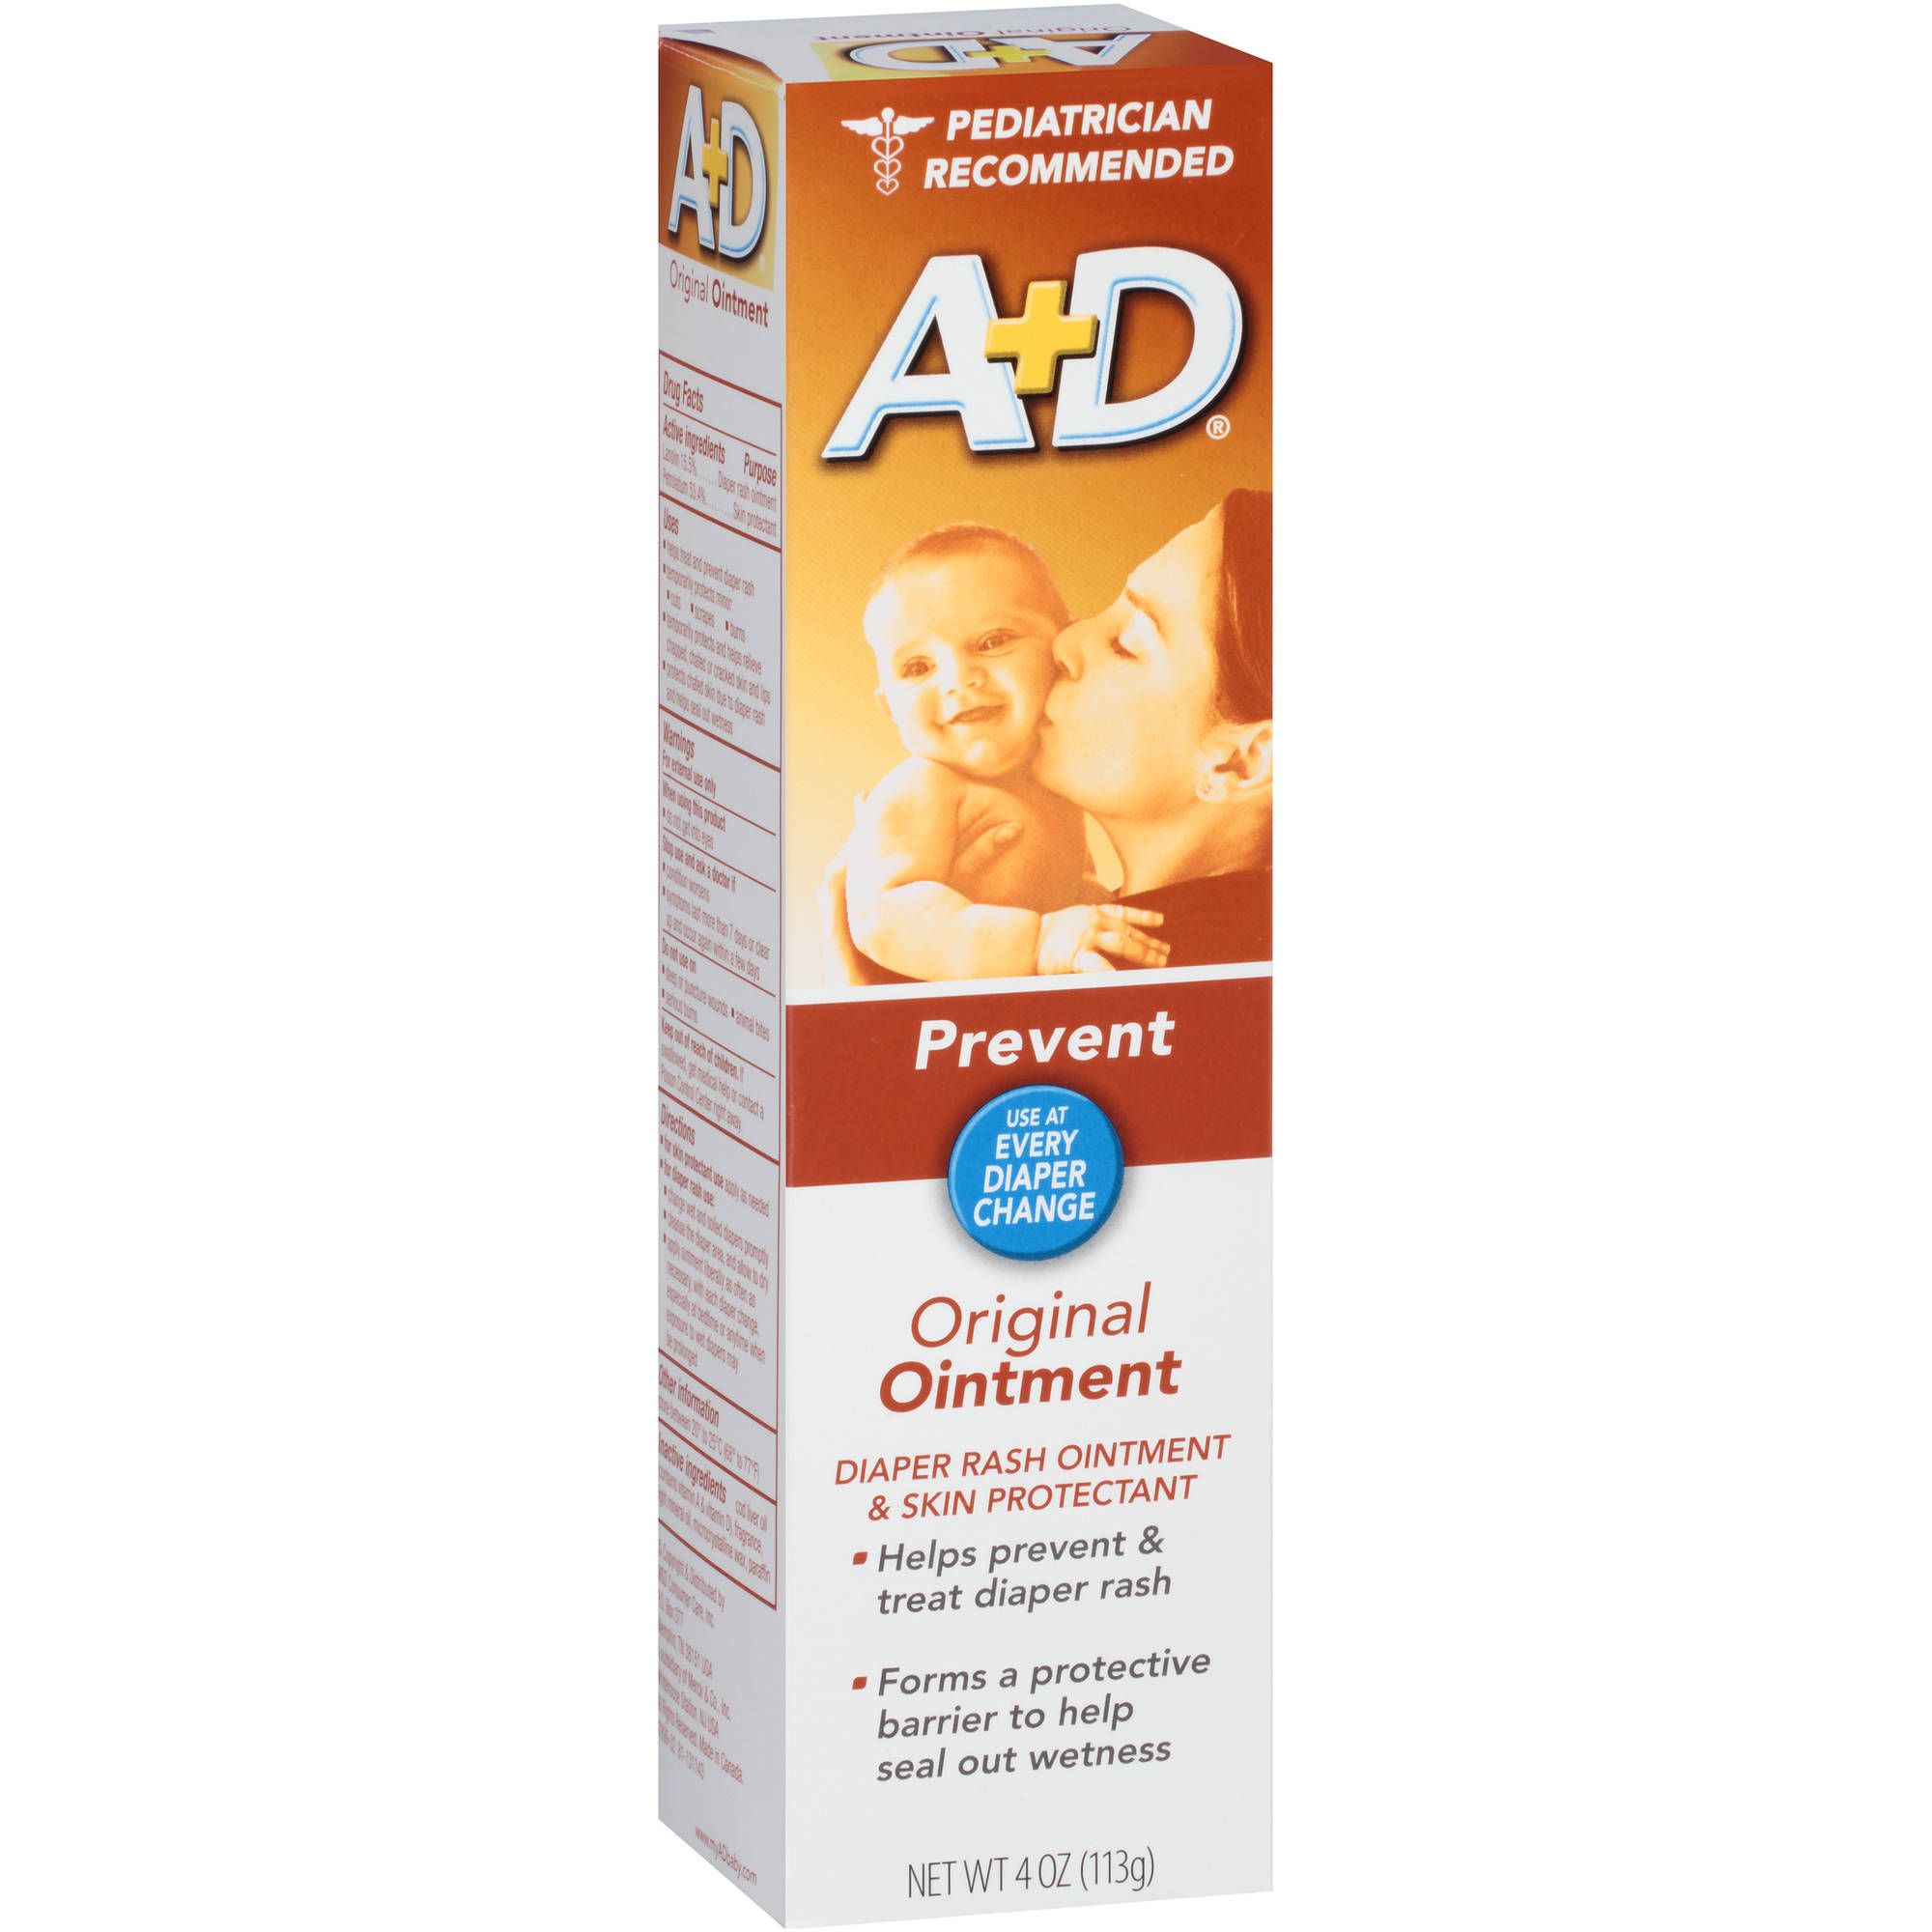 Image of A+D Prevent Diaper Rash Ointment Original, 4.0 OZ